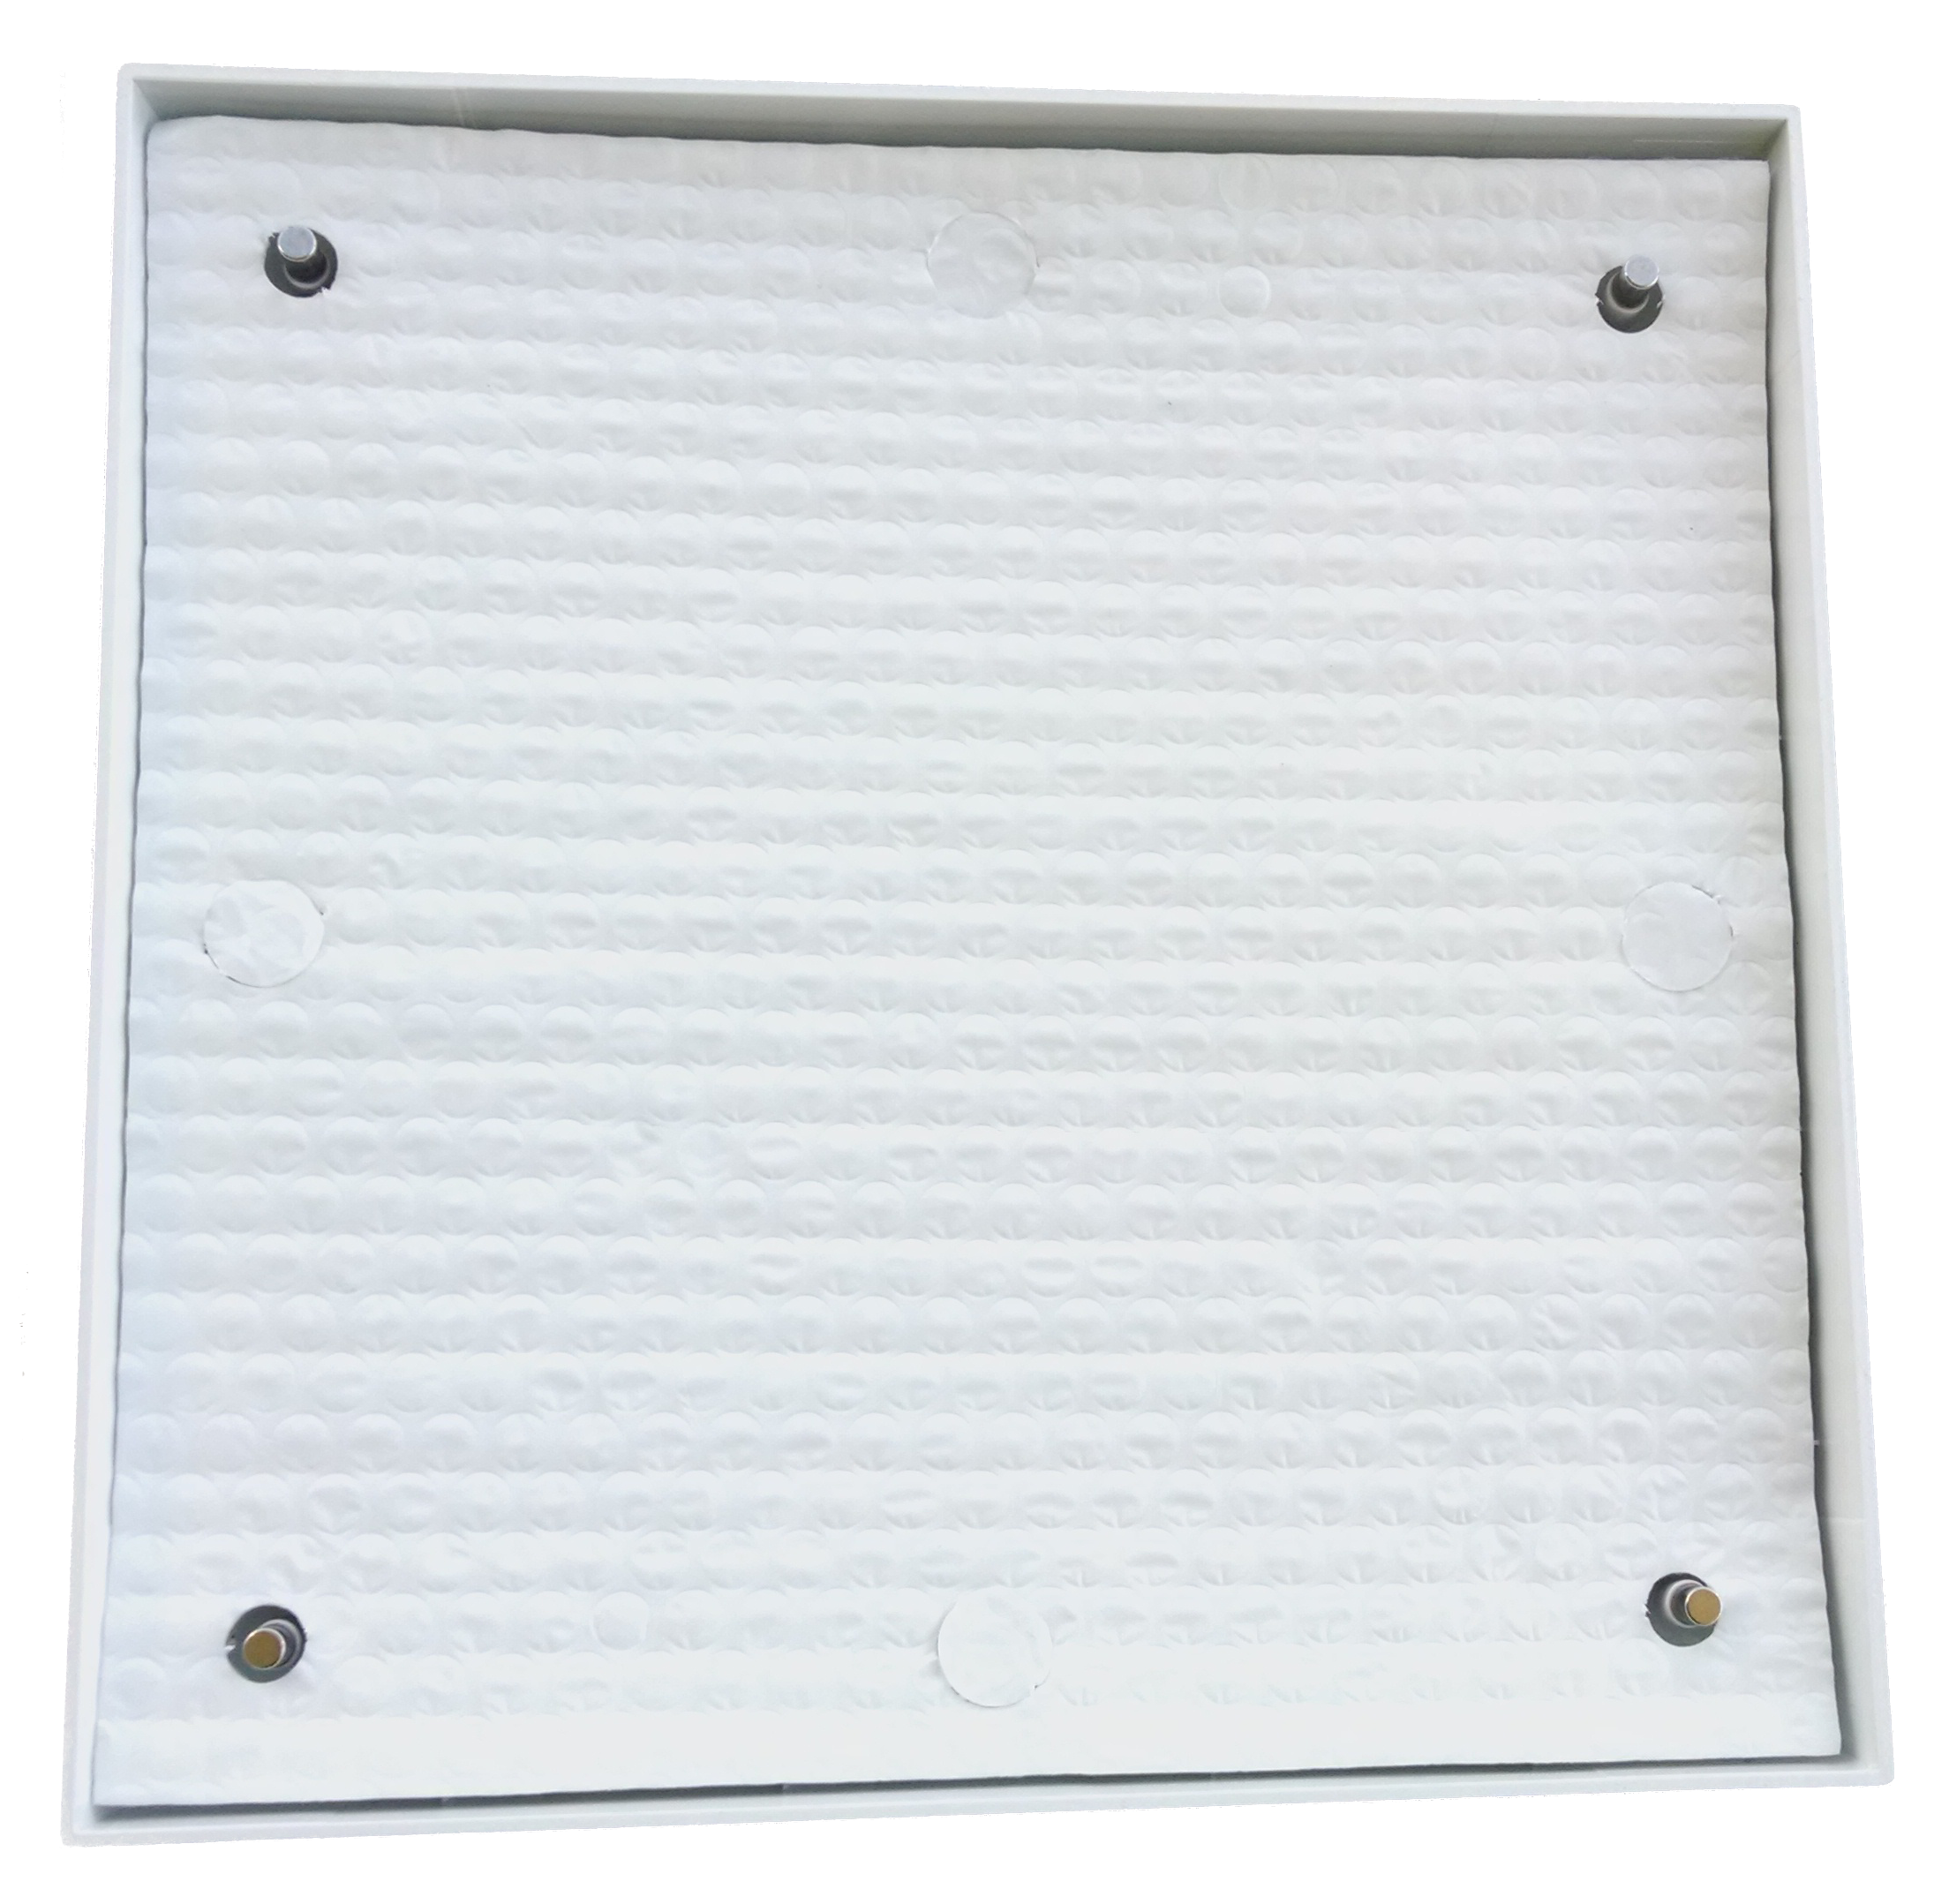 Elima Draft Insulated Magnetic Register Vent Cover For